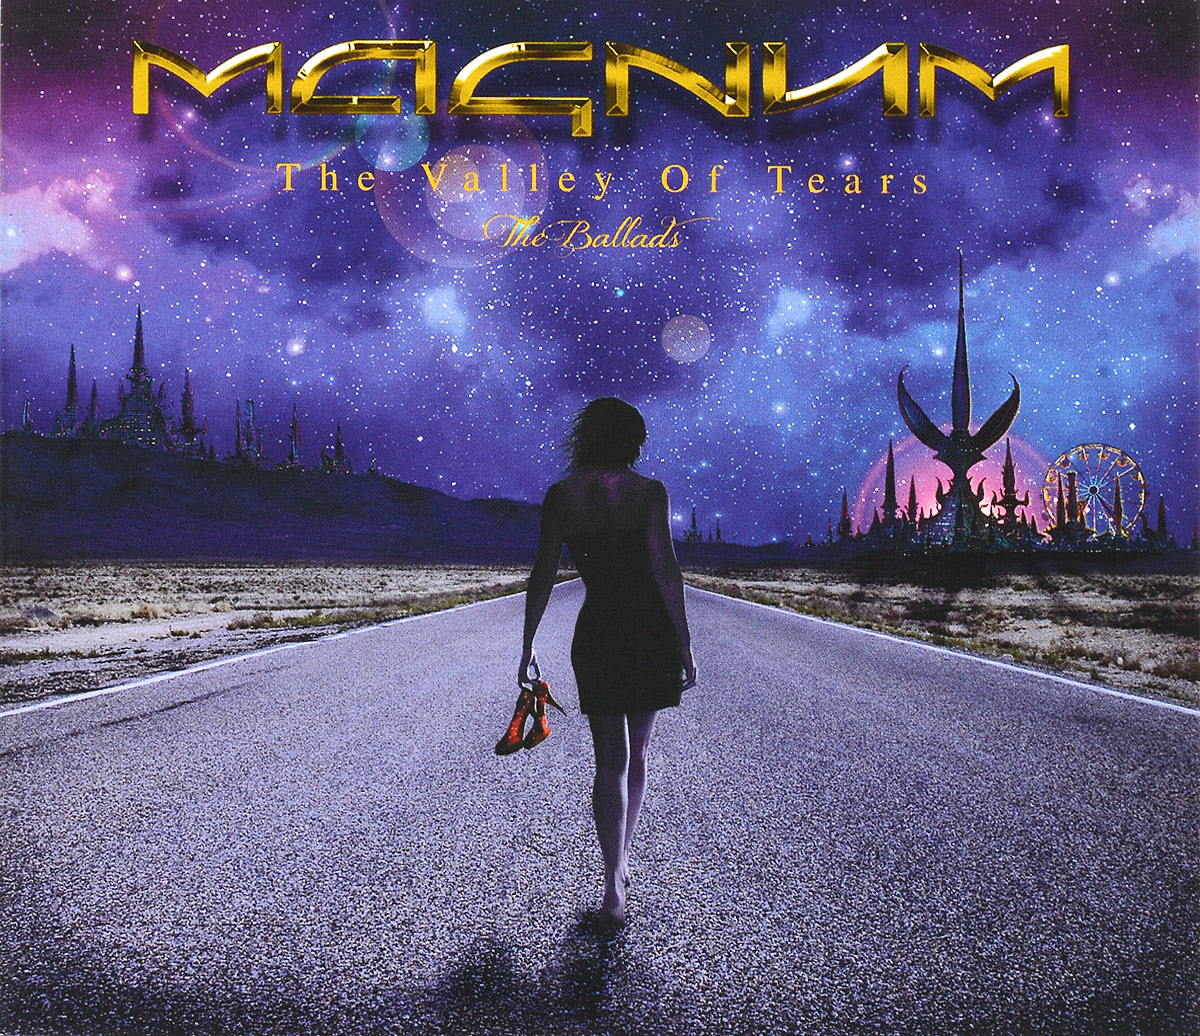 Magnum. The Valley Of Tears. The Ballads